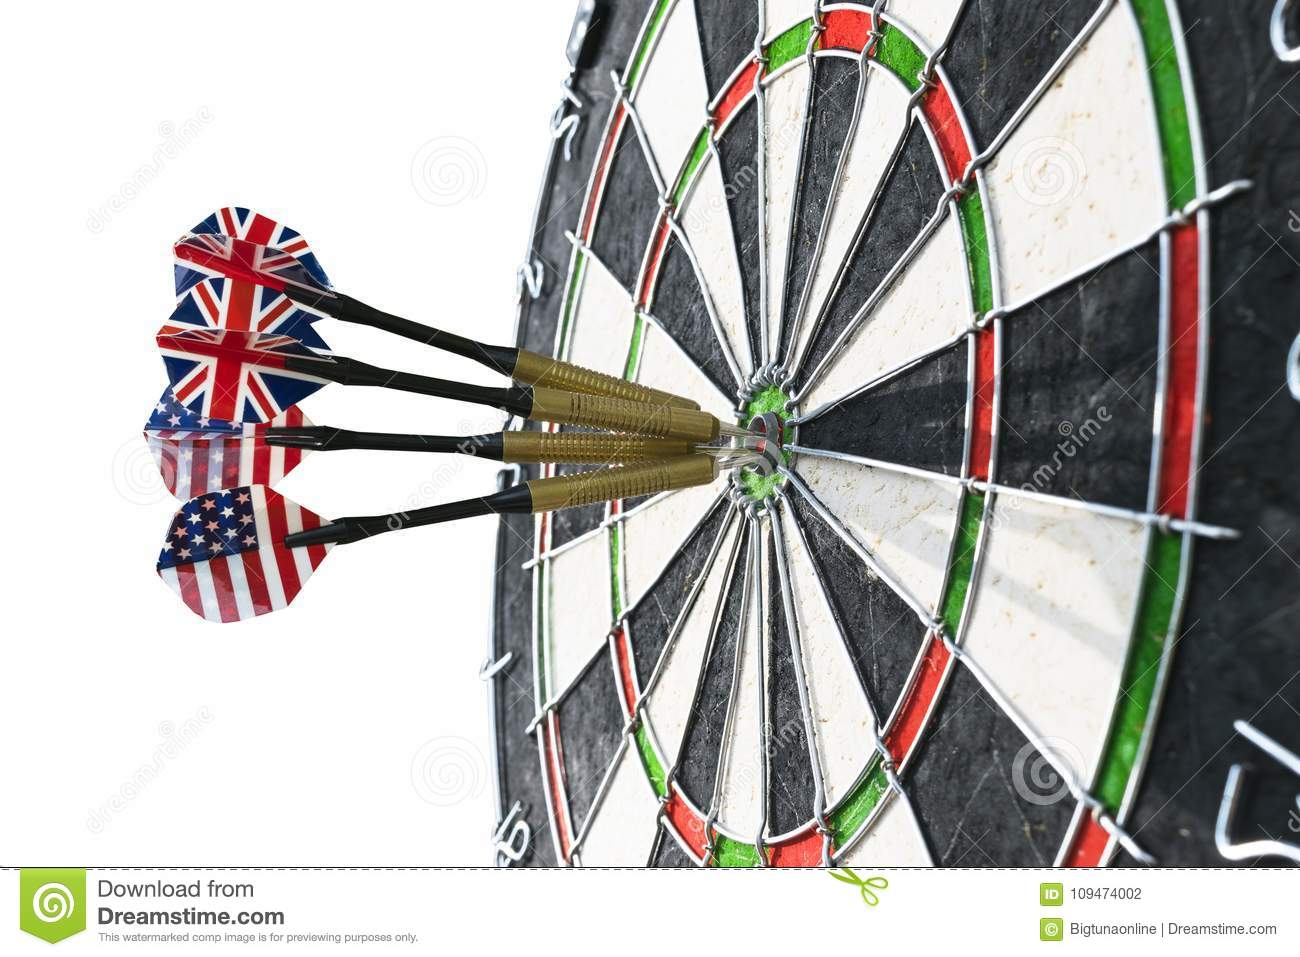 Metal Darts Have Hit The Red Bullseye On A Dart Board Darts Game